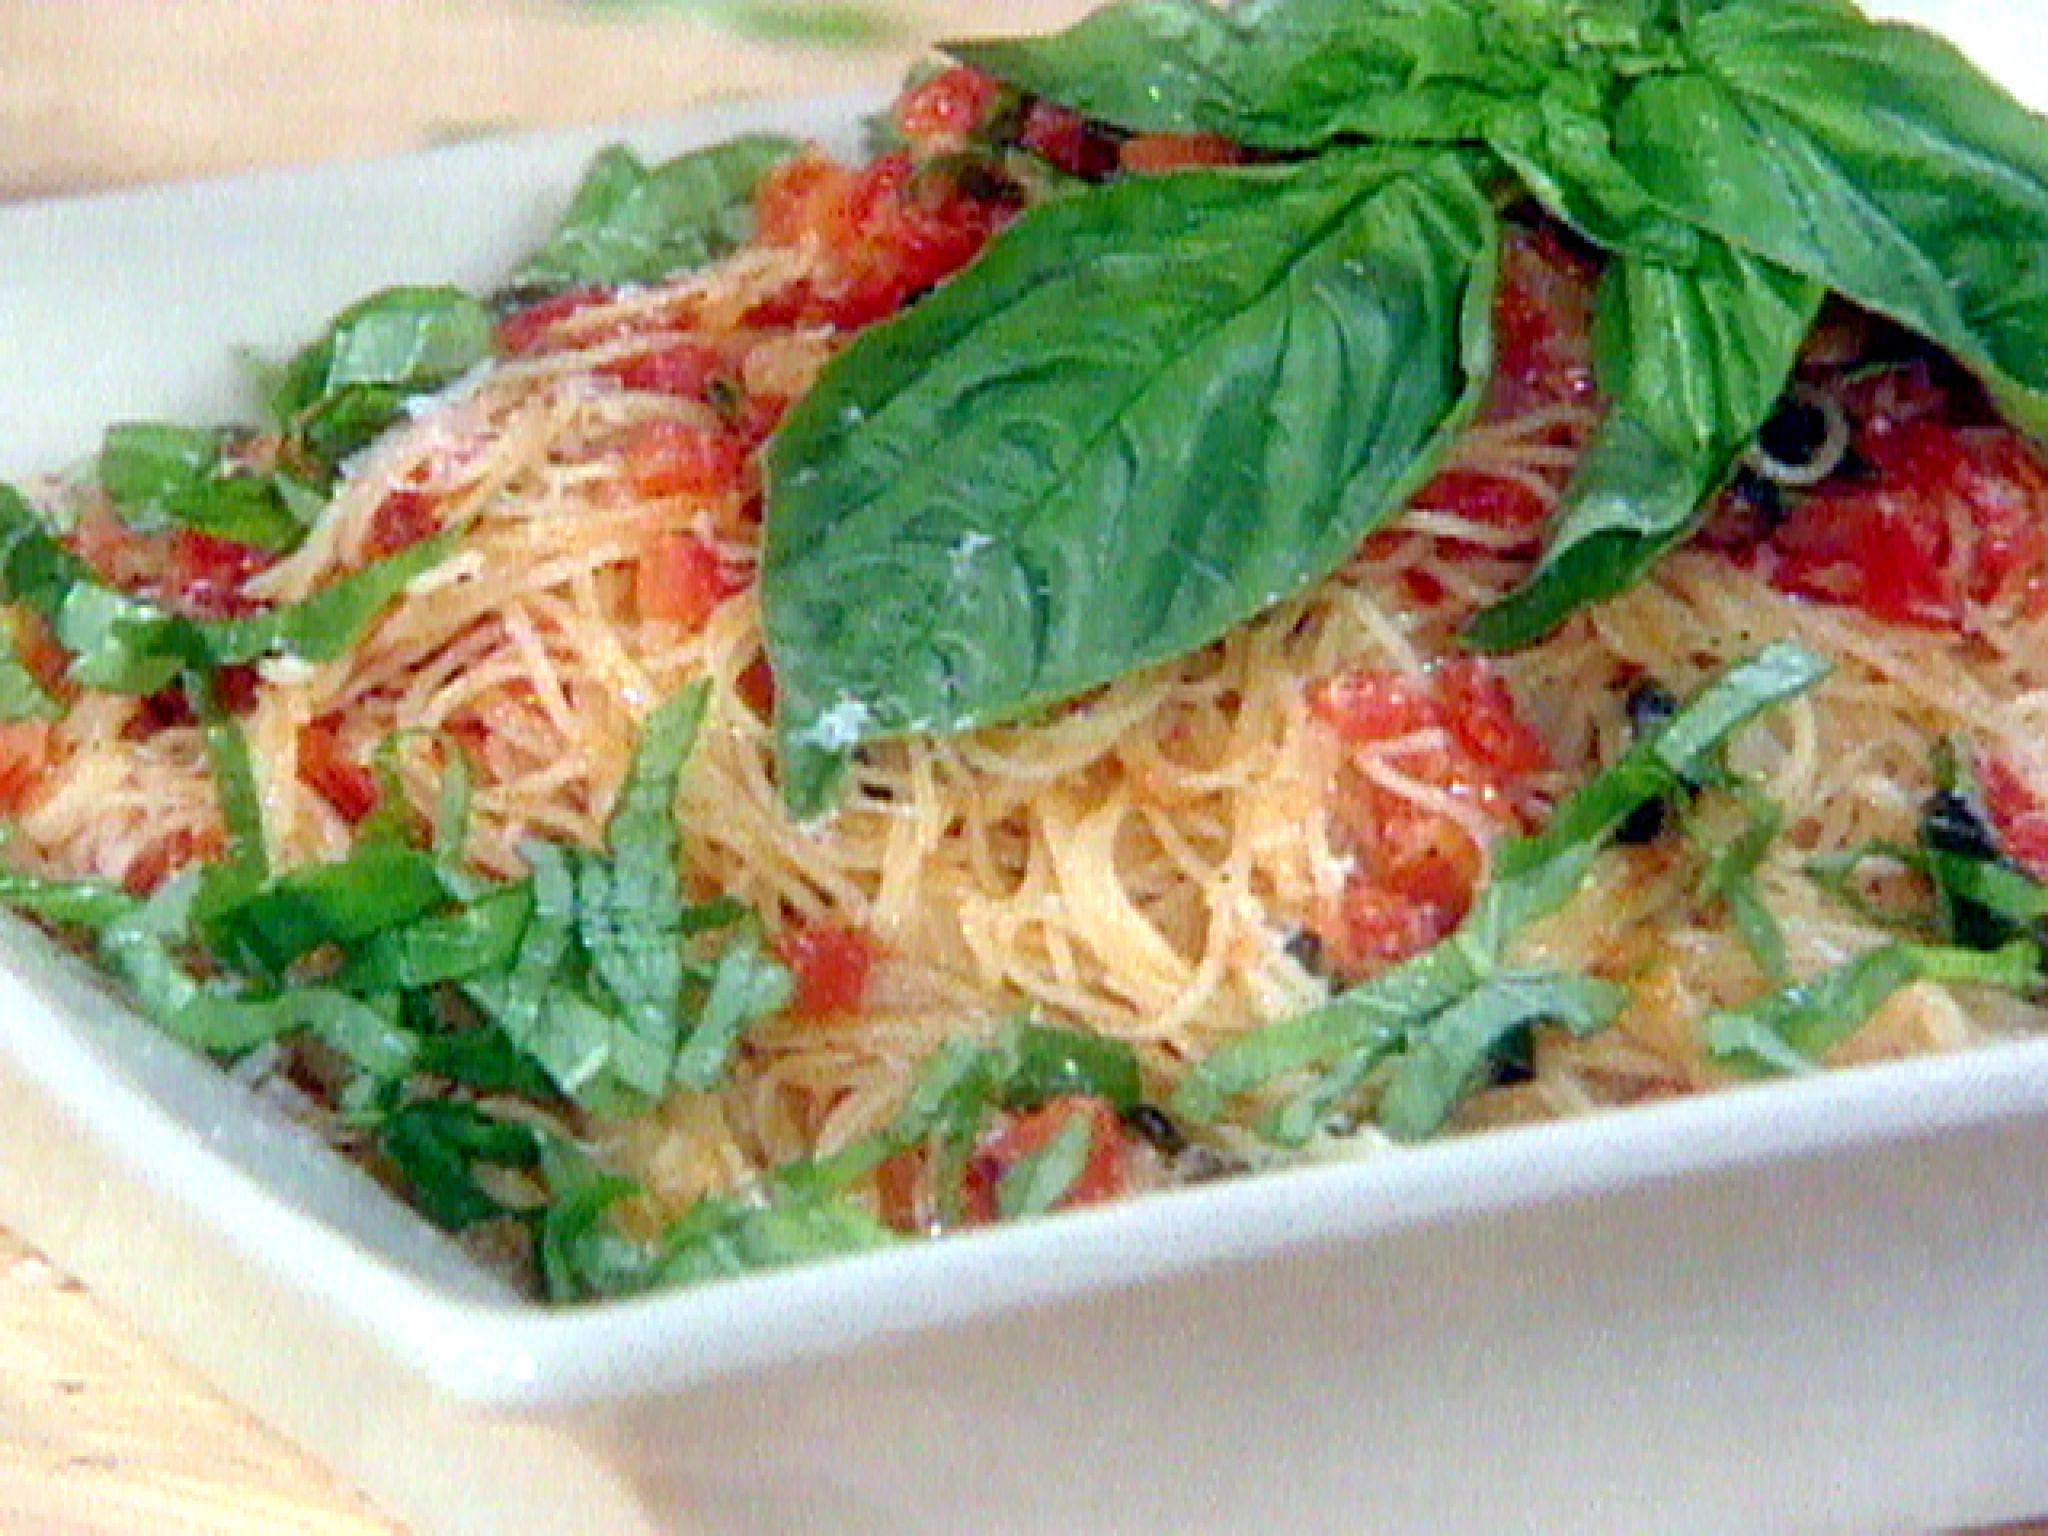 Fresh tomato basil and garlic sauce over angel hair pasta recipe fresh tomato basil and garlic sauce over angel hair pasta recipe angel hair pasta recipes angel hair and garlic sauce forumfinder Images